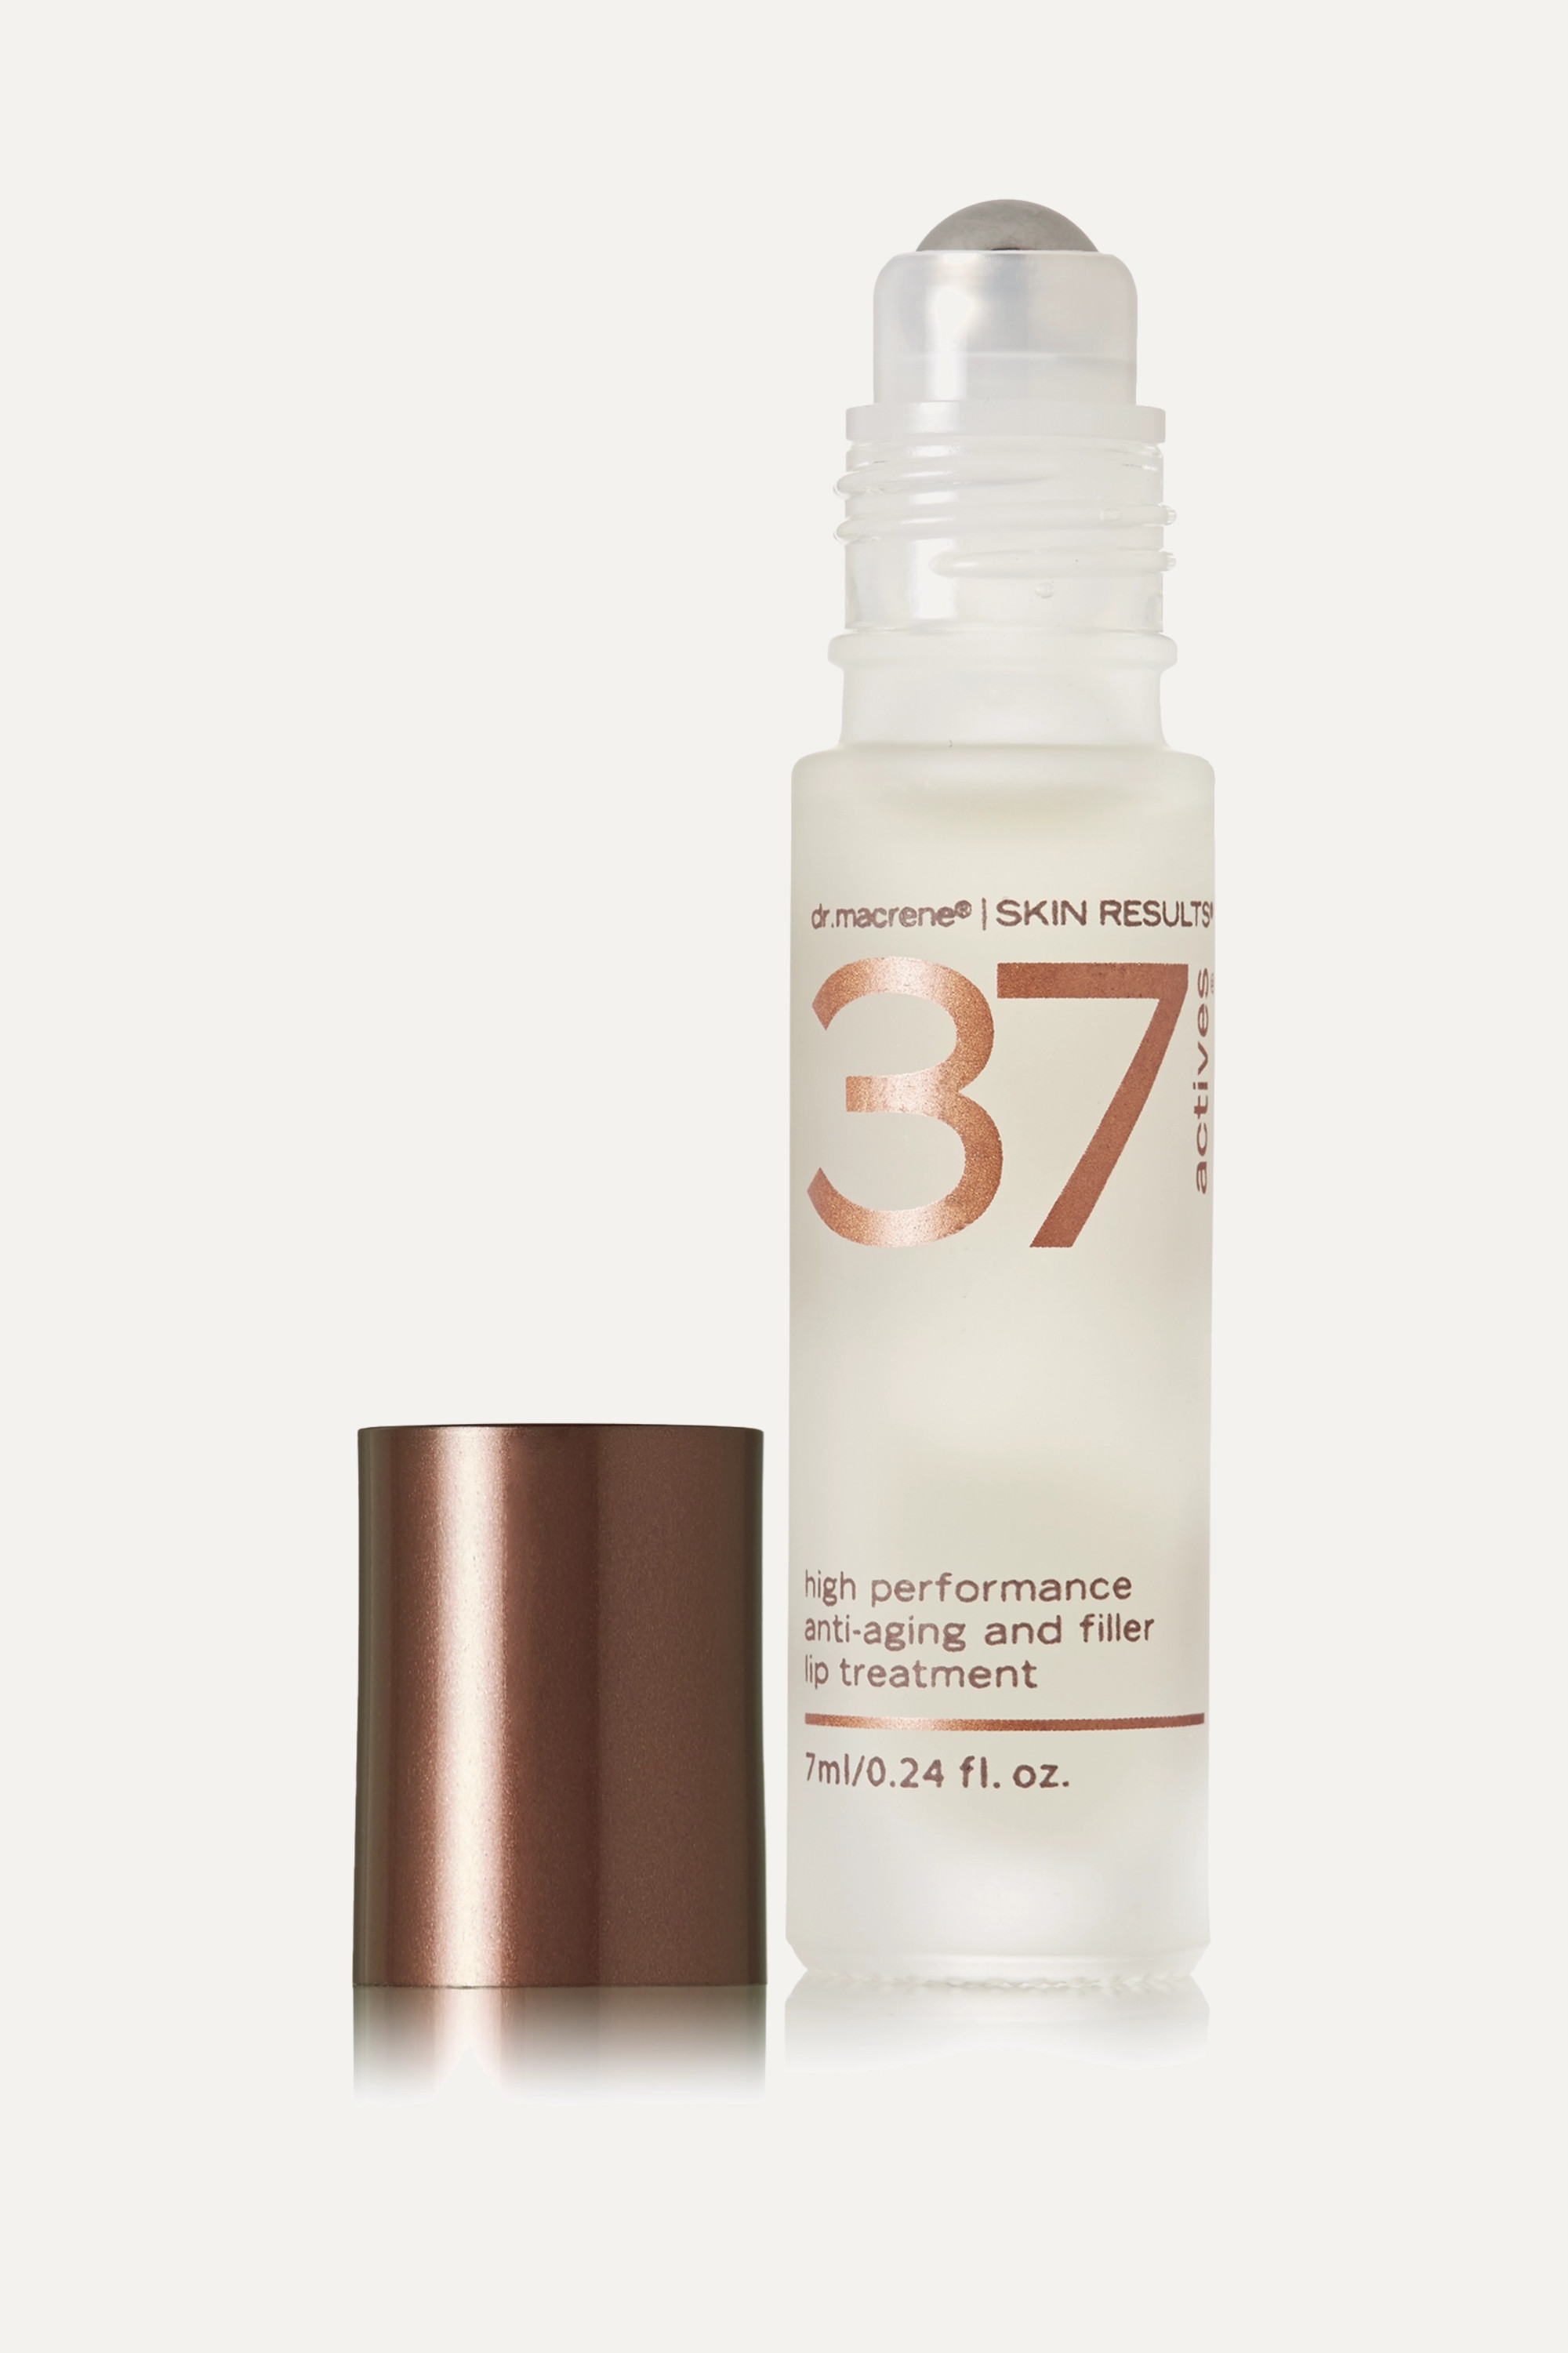 37 Actives High Performance Anti-Aging and Filler Lip Treatment, 7ml